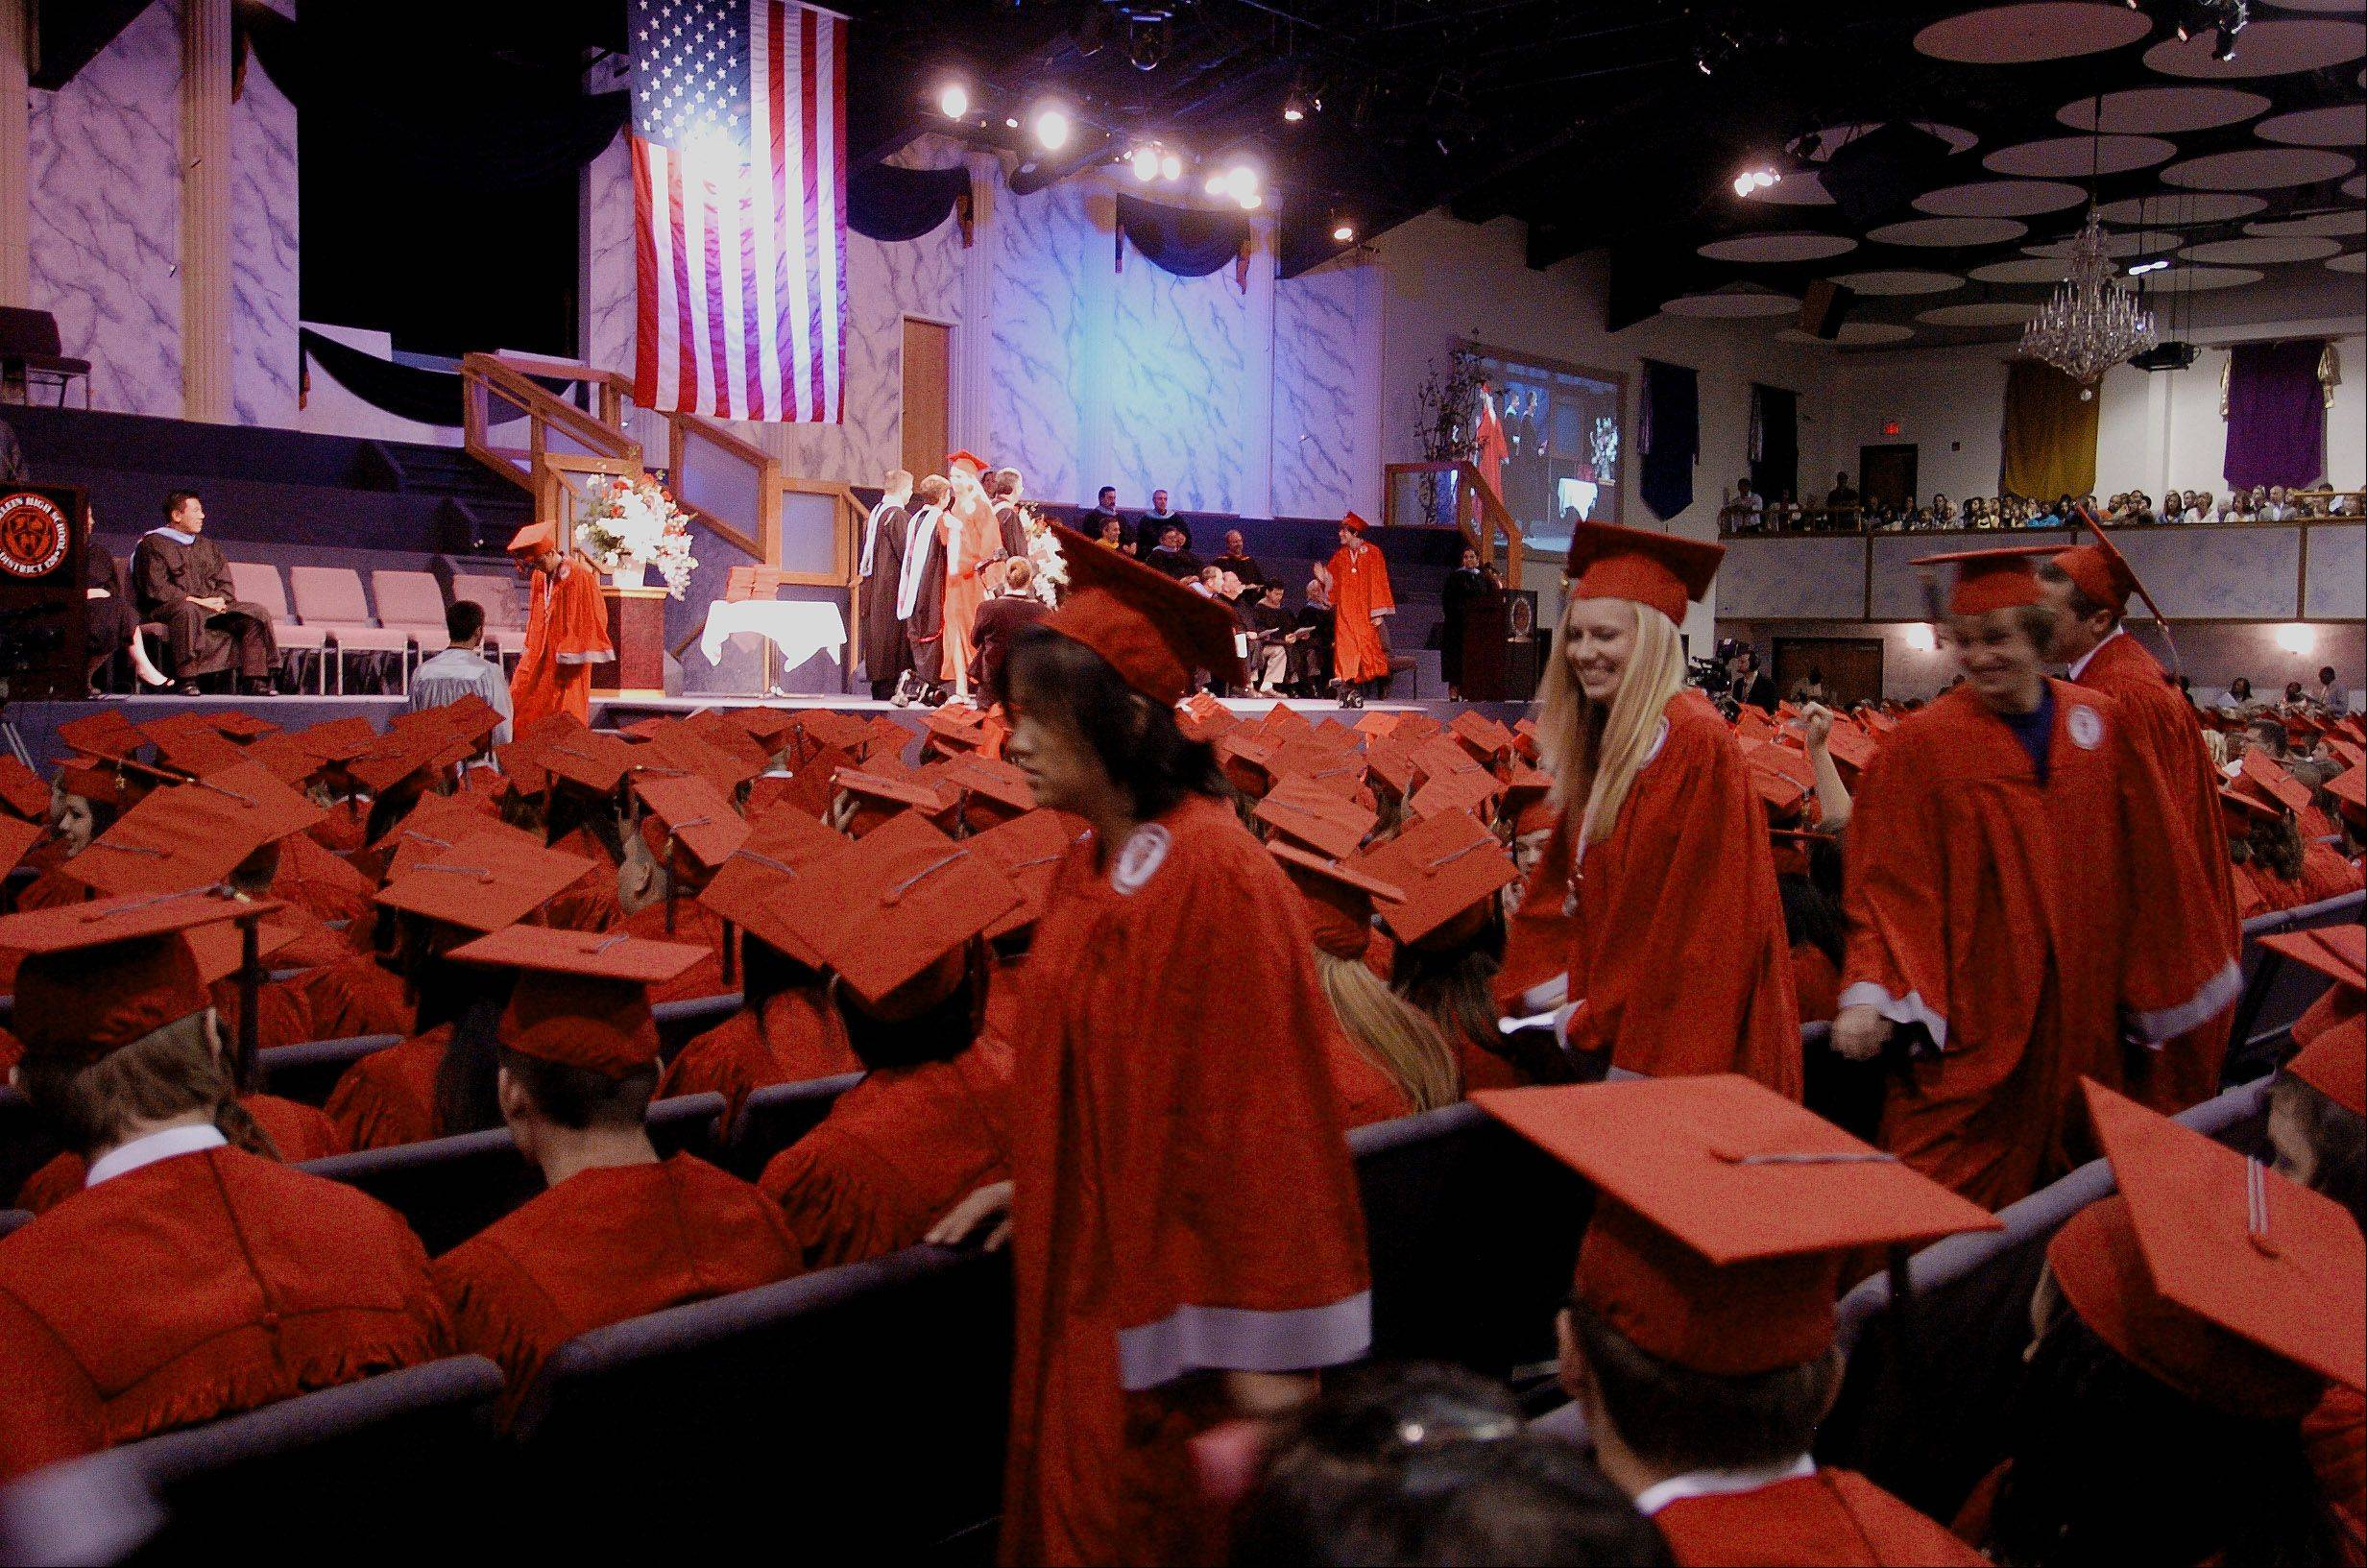 Mundelein High School�s commencement ceremony will move to the Sears Centre in Hoffman Estates in 2014.